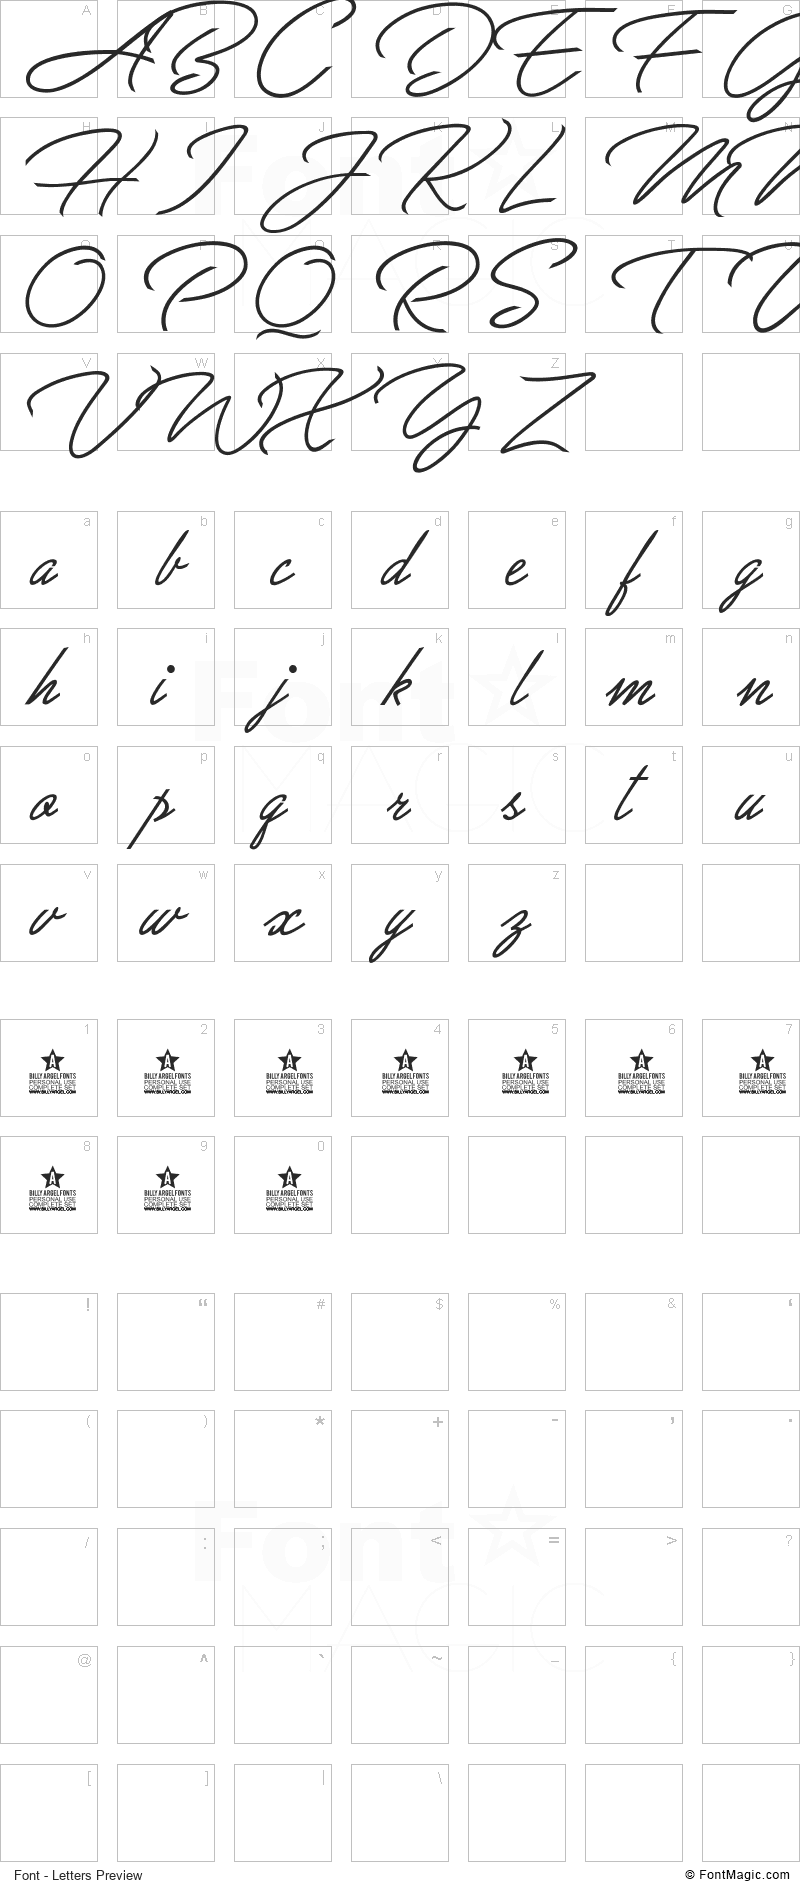 Great Day Font - All Latters Preview Chart